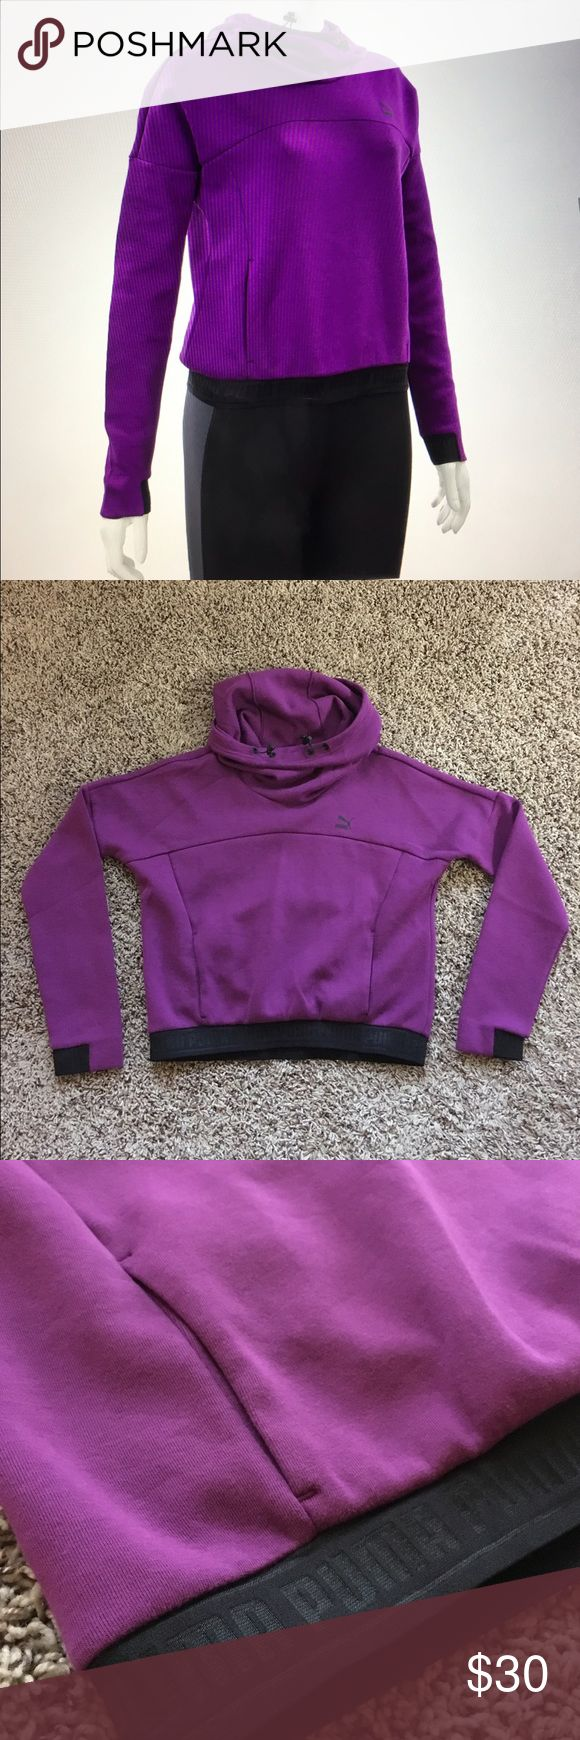 Puma sweatshirt Nice purple cowl neck Puma sweatshirt. Like new condition. Black elastic Puma around the hem - front pockets. Puma Tops Sweatshirts & Hoodies